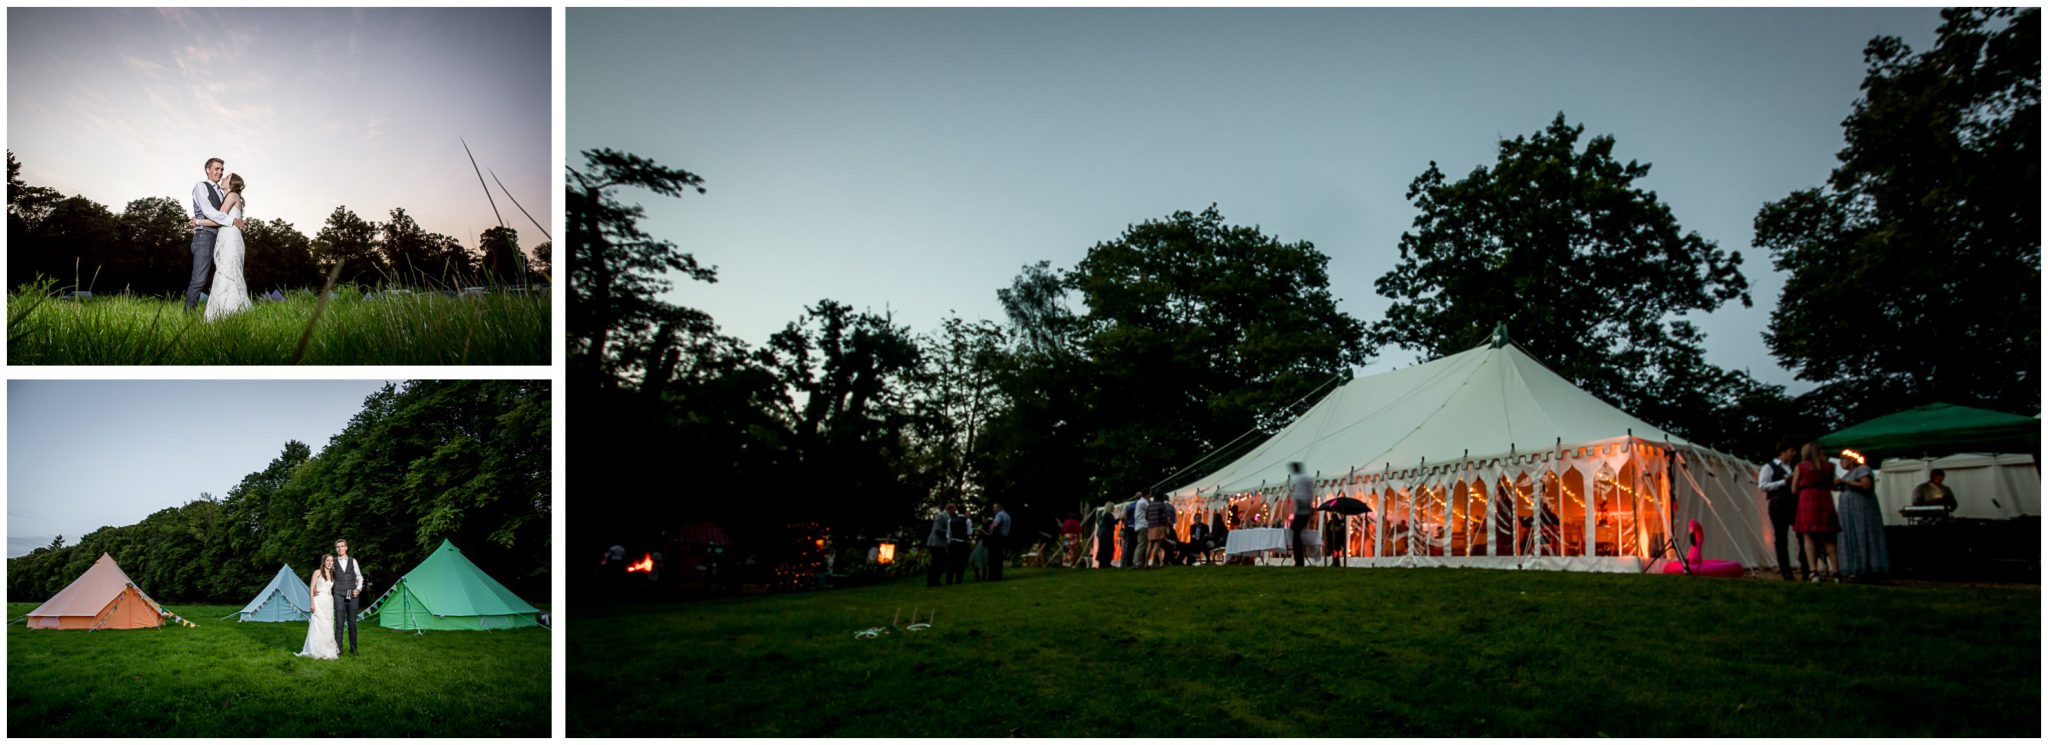 Timsbury Manor Festival Wedding marquee exterior in evening light